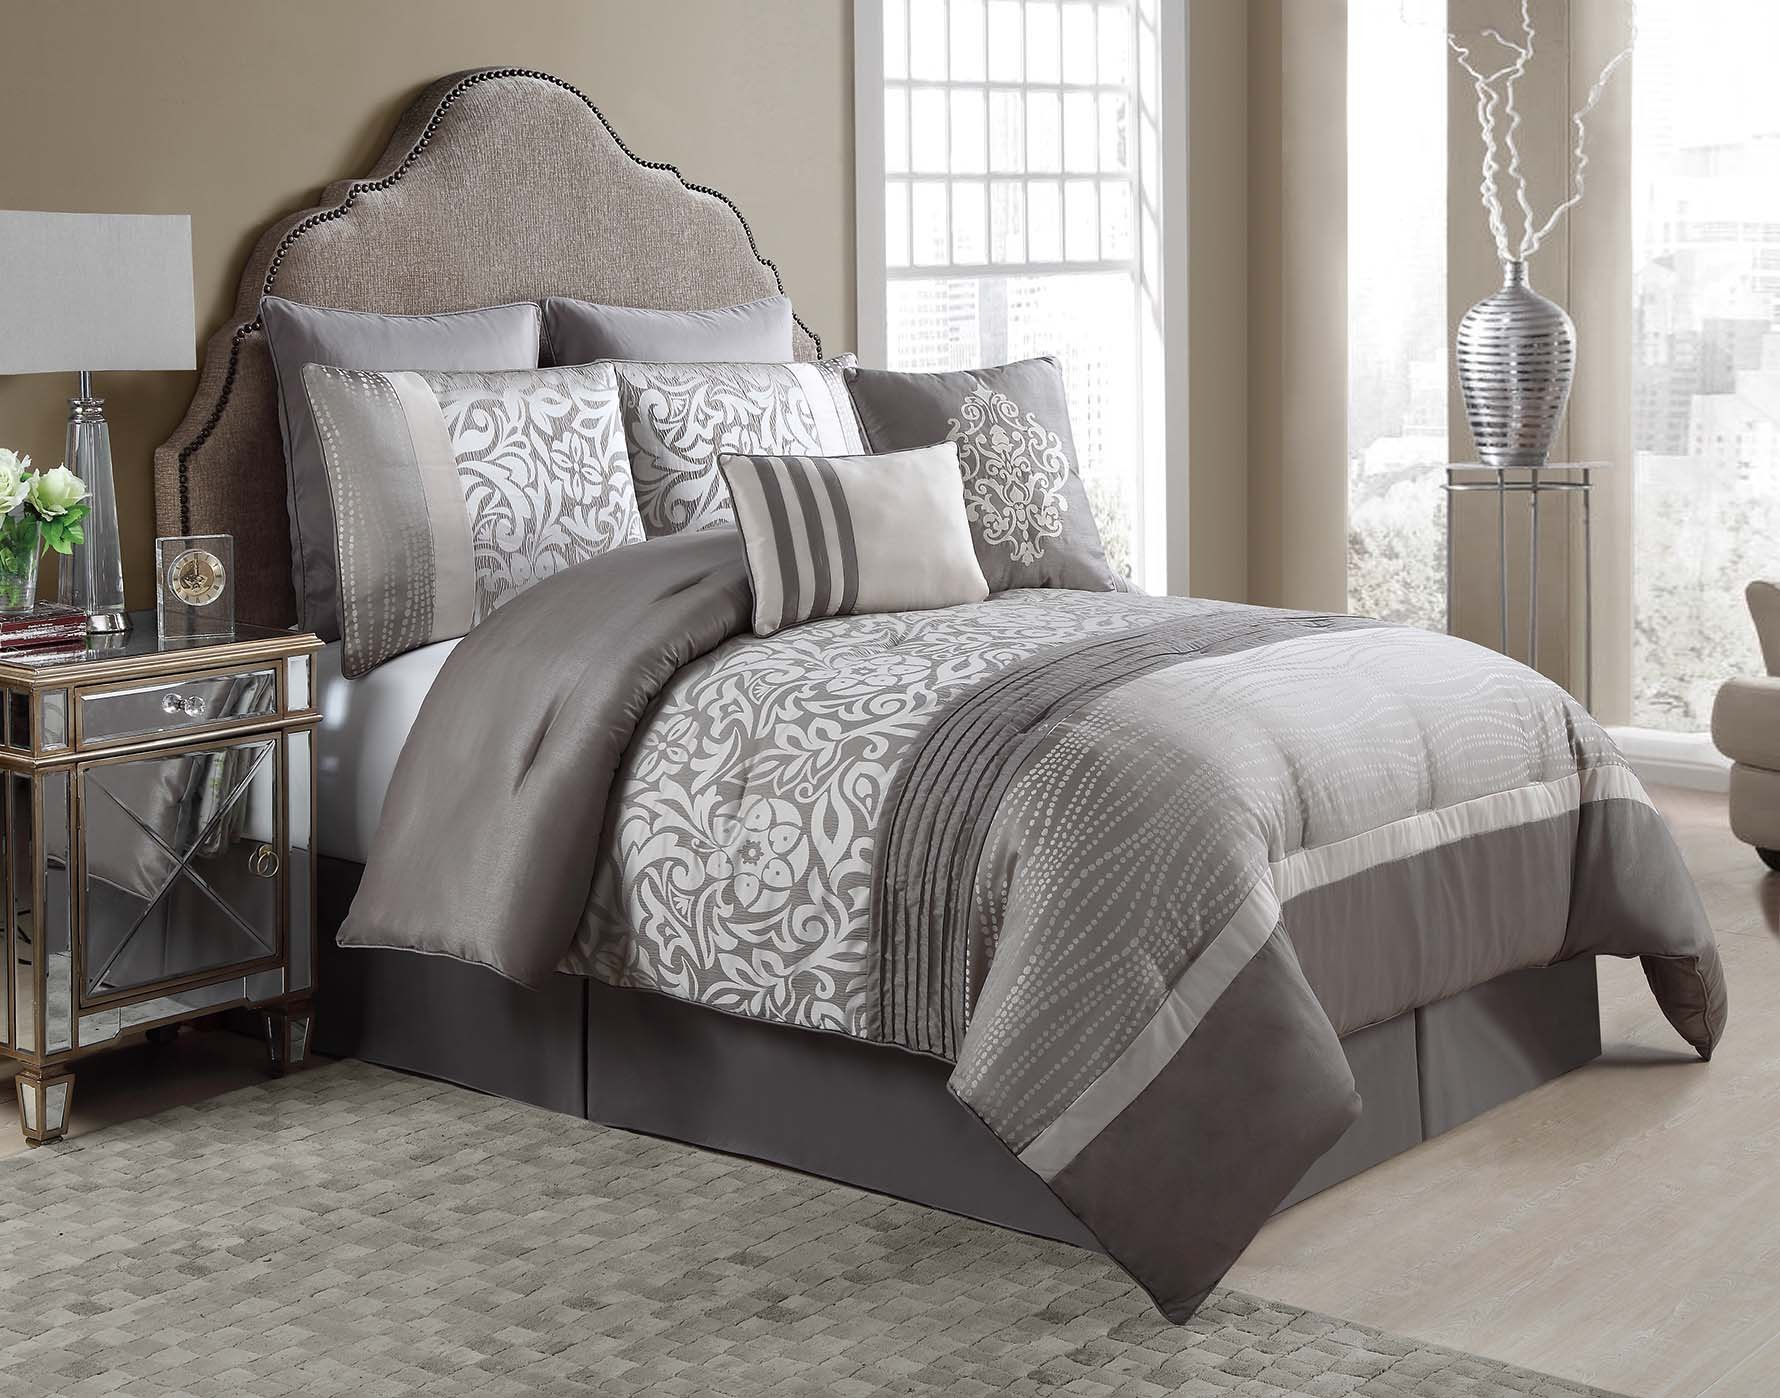 Queen Size Complete BED-IN-A-BAG in Taupe Luxurious 8 Pc Set w/ Decorative Pillows by VCNY Home